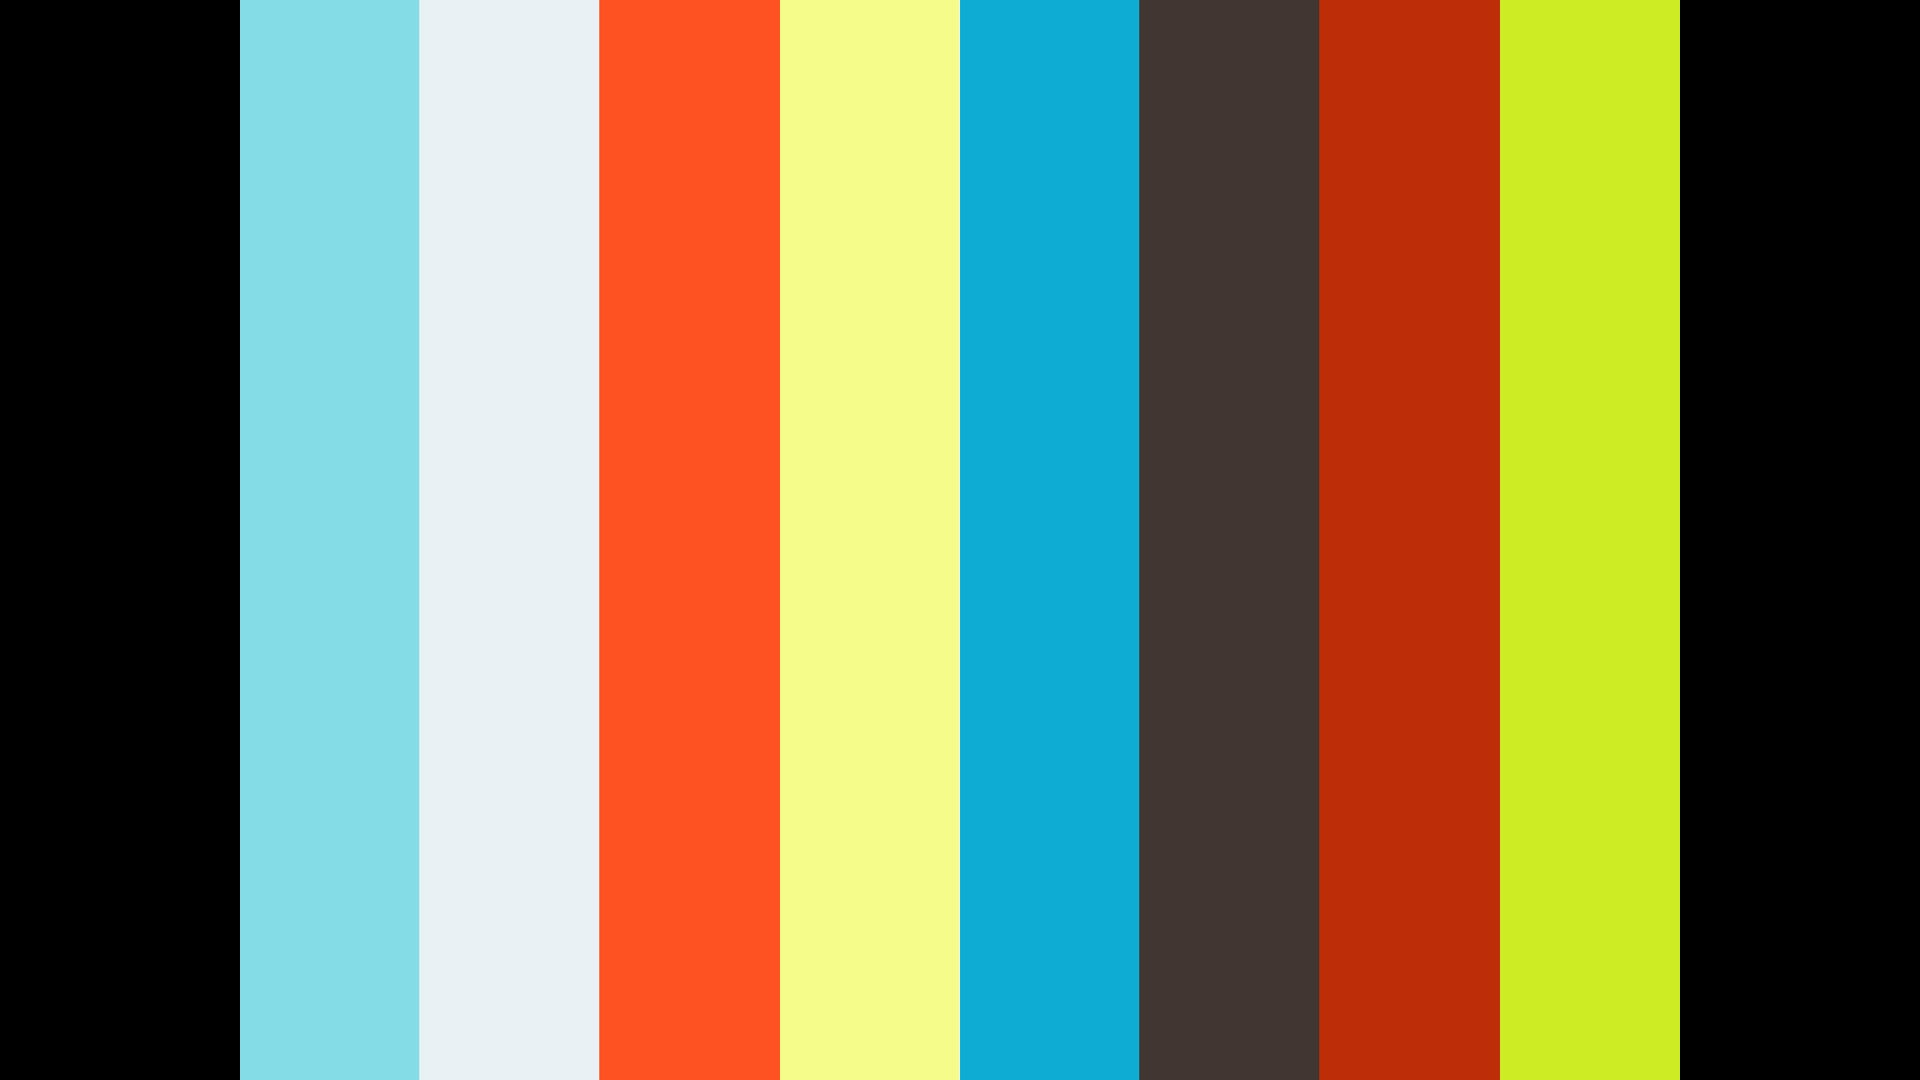 Liz Cambage #BVAwards Acceptance Speech